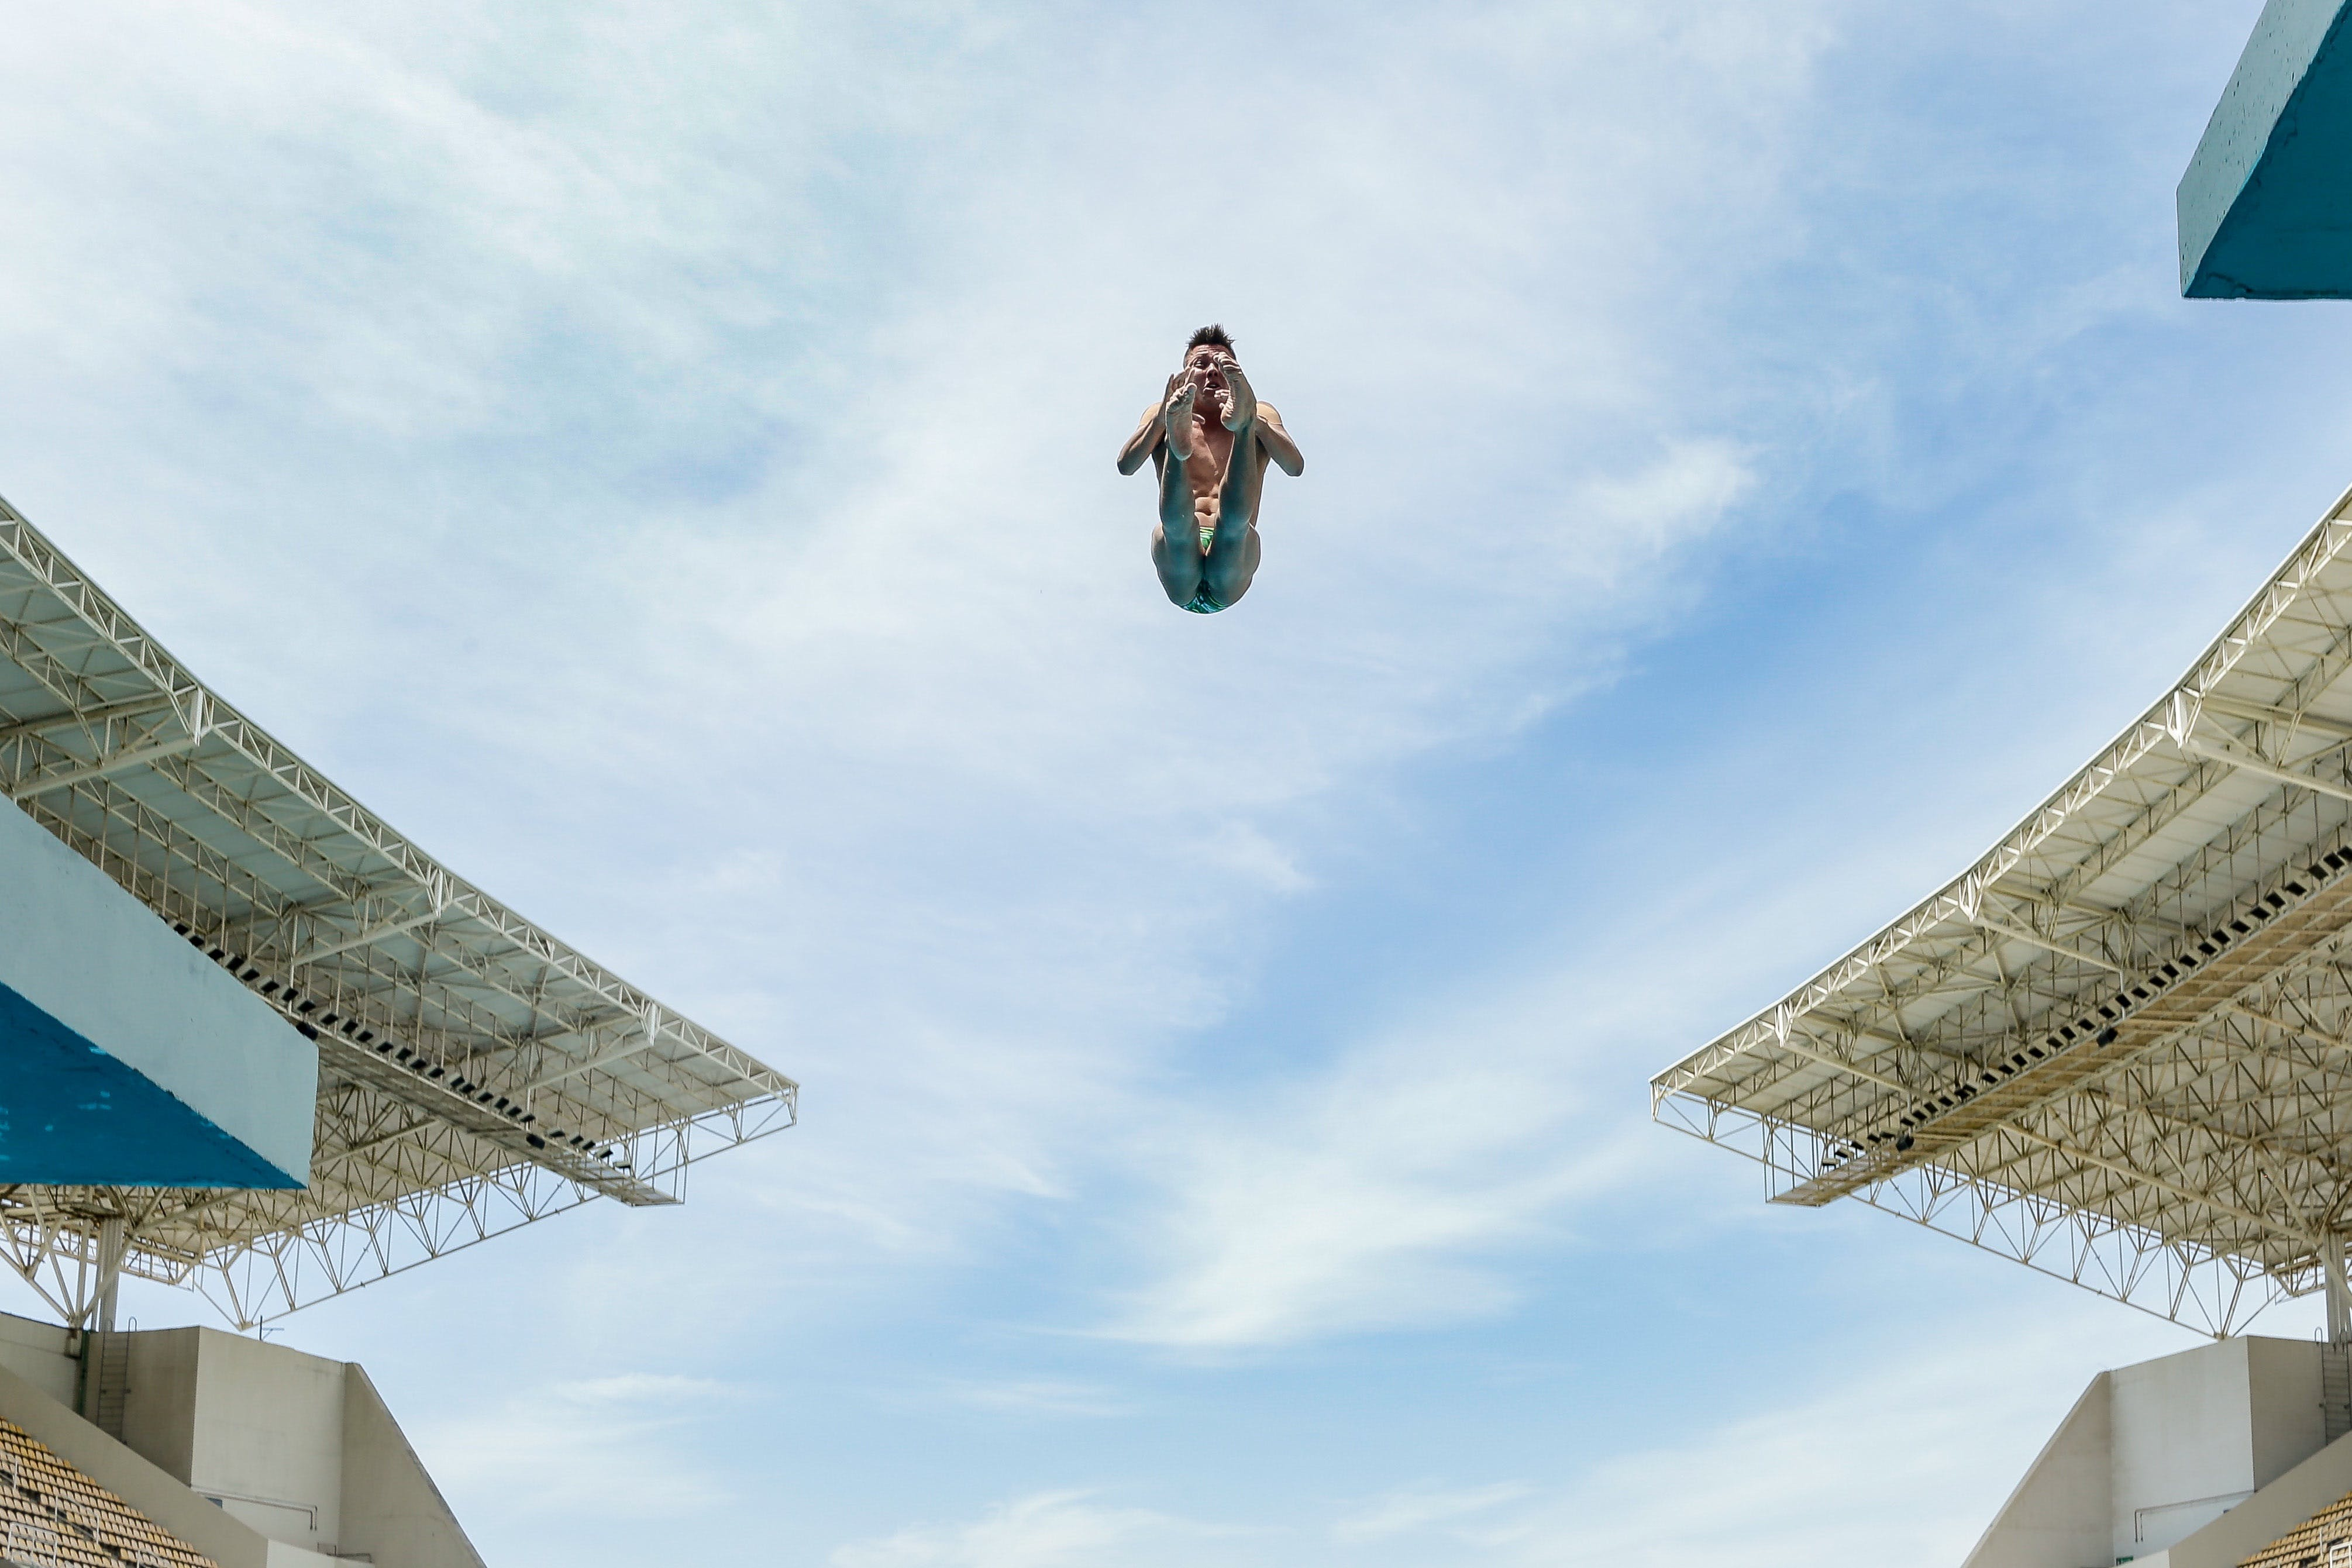 Free stock photo of sky, buildings, skydiving, height